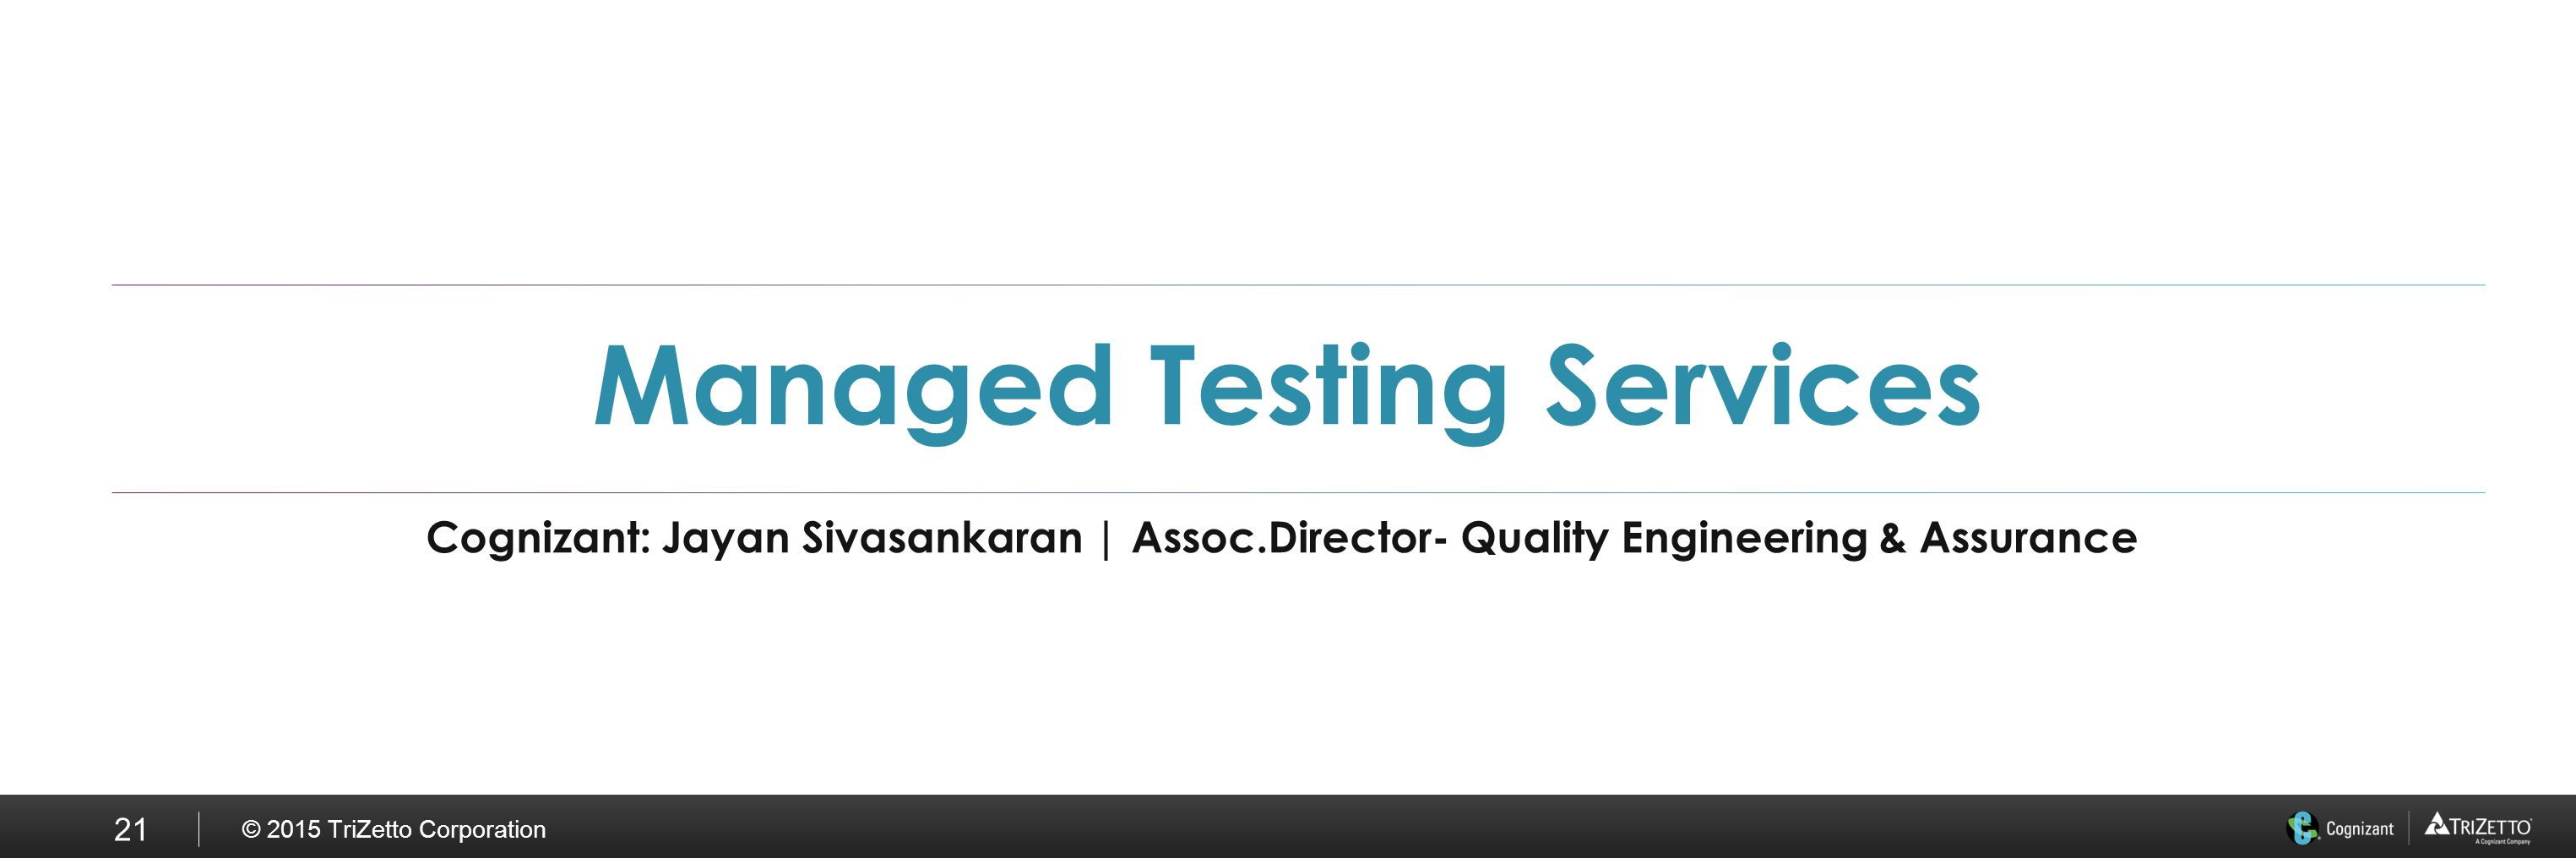 Enterprise wide testing solutions ppt download 21 managed testing services 1betcityfo Gallery